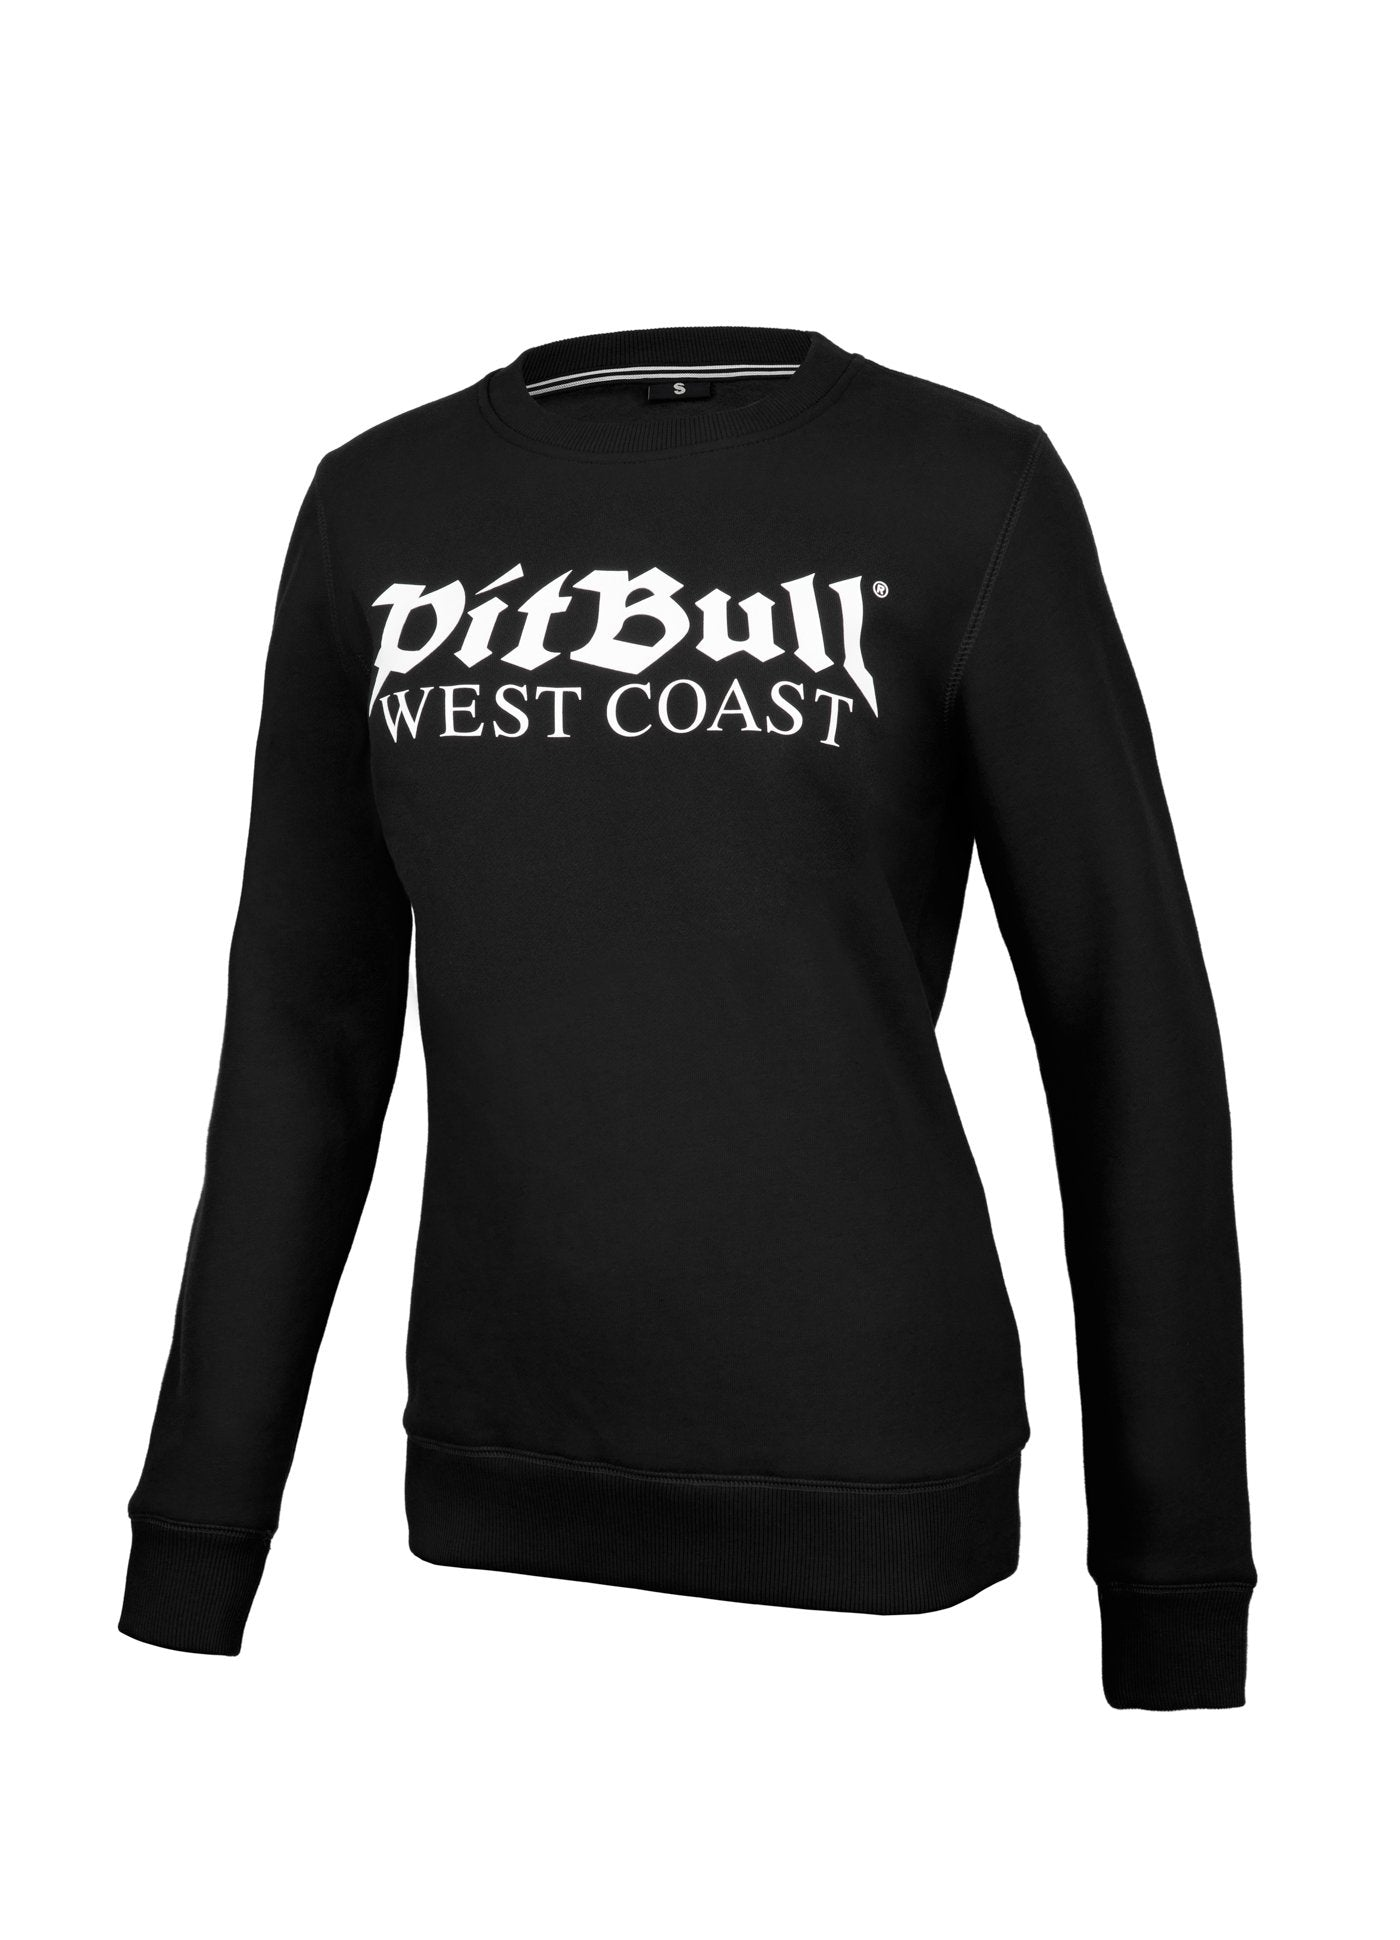 Women OLD LOGO Crewneck Black - Pitbull West Coast U.S.A.